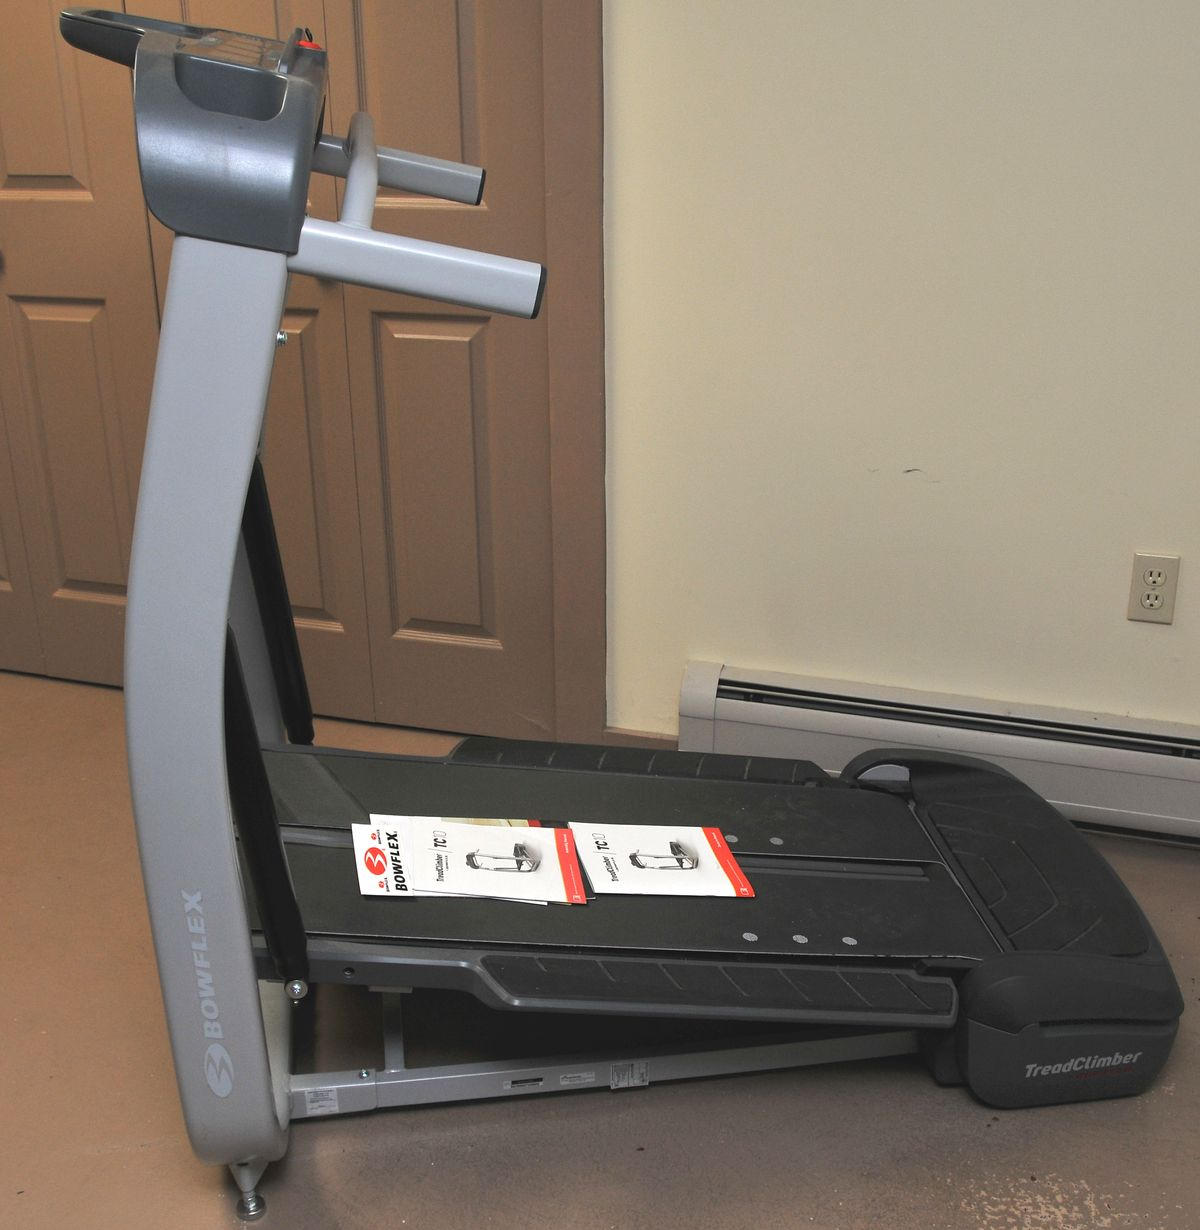 Bowflex Treadclimber On Ebay: Bowflex Treadclimber TC10 Barely Used MUST BE PICKED UP In